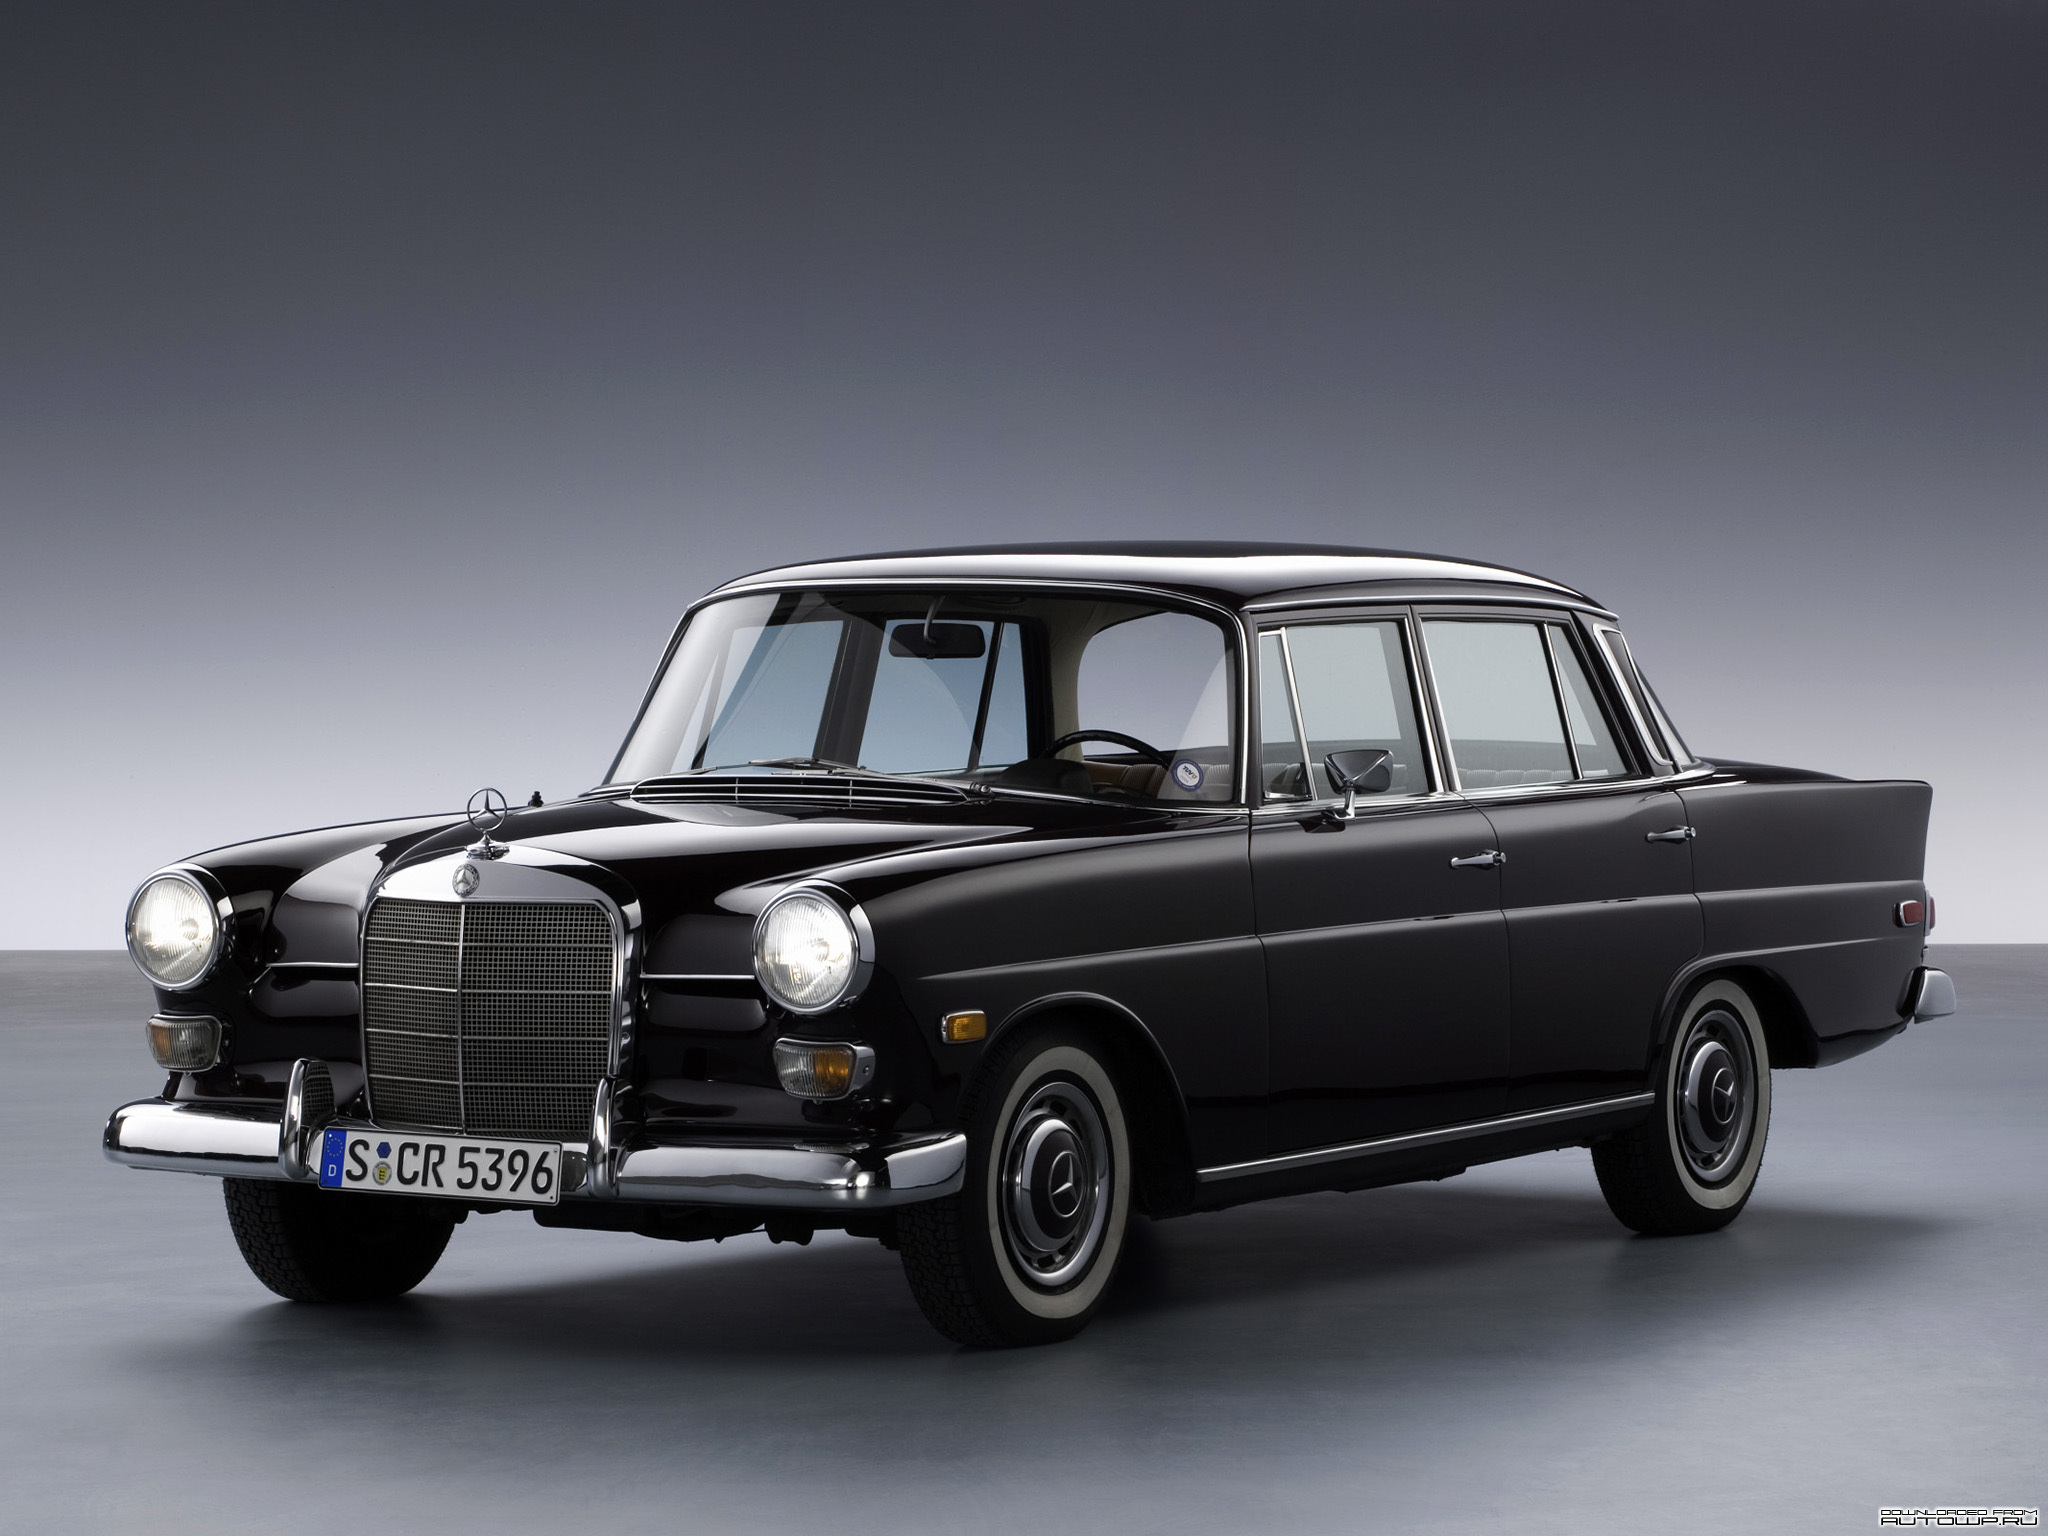 Mercedes benz e class history photos on better parts ltd for History mercedes benz